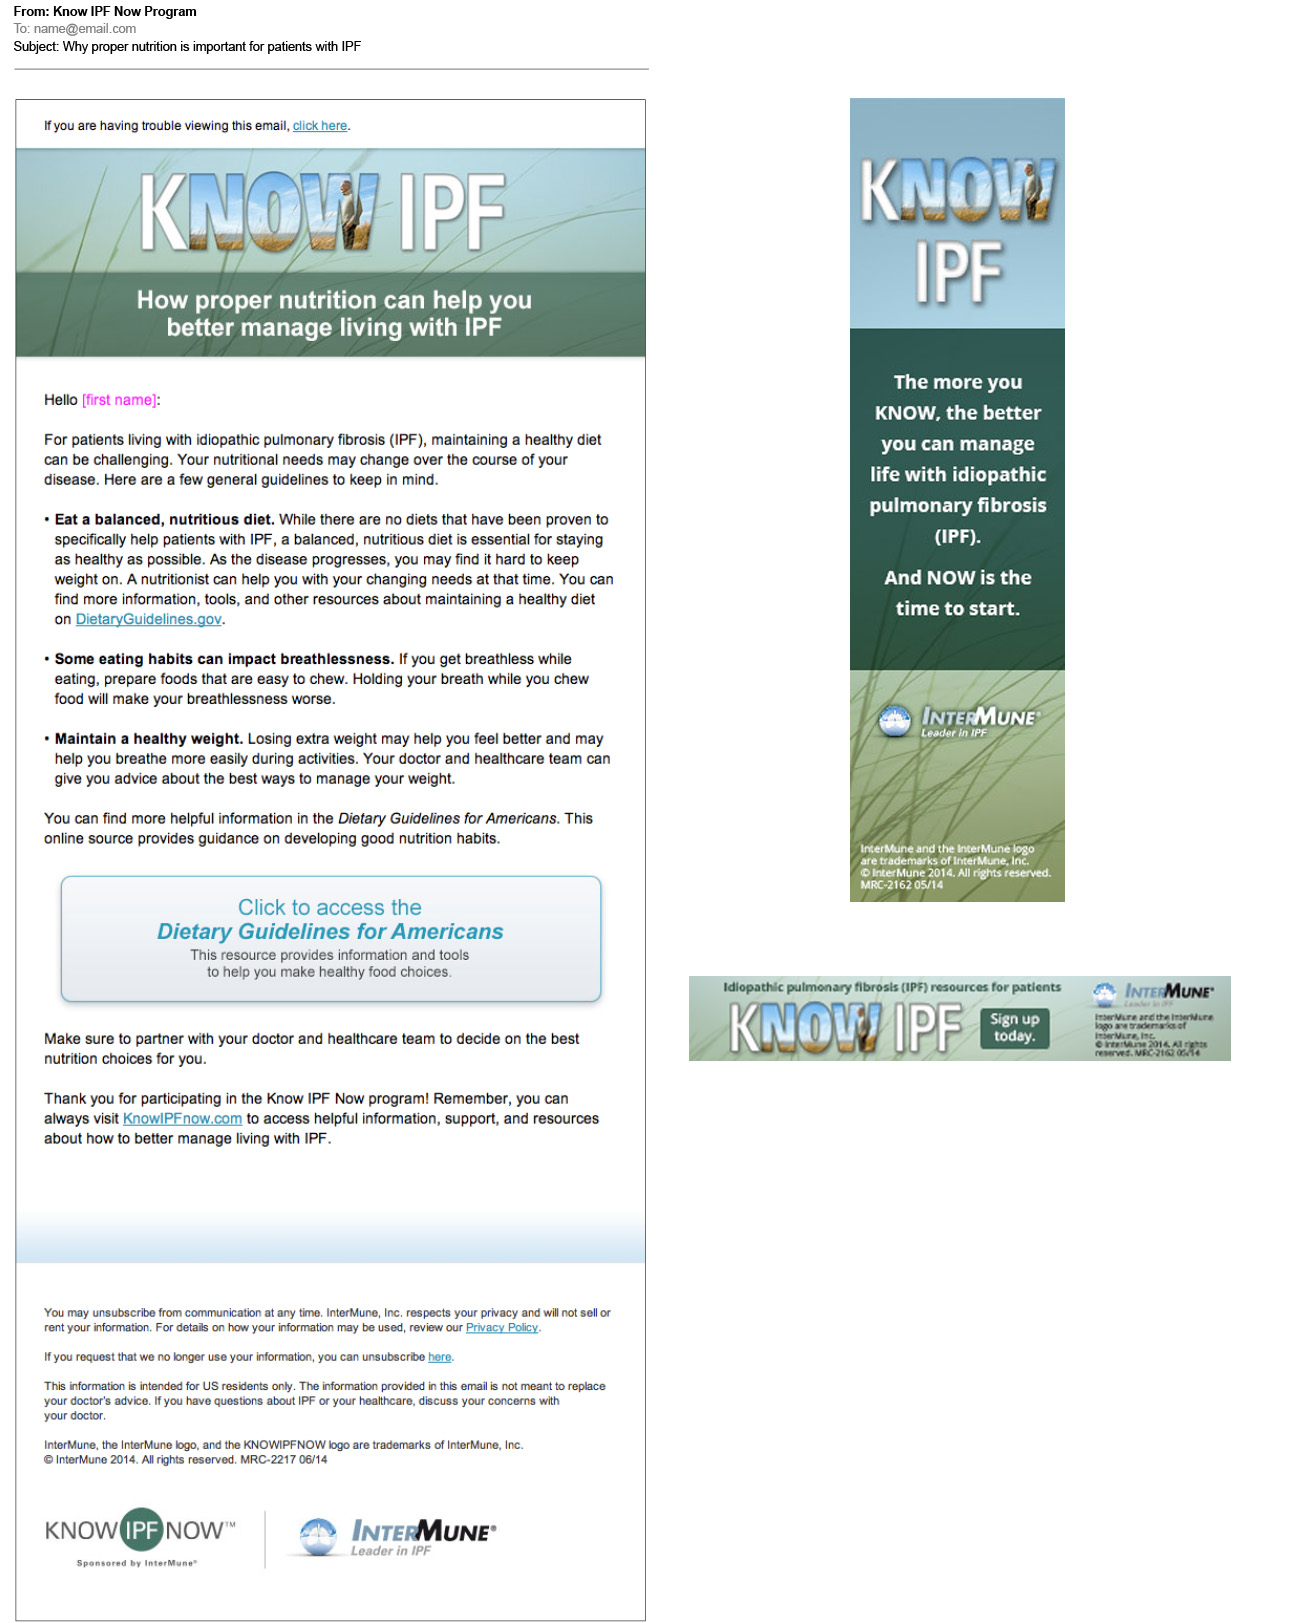 KNow IPF blasts and banners